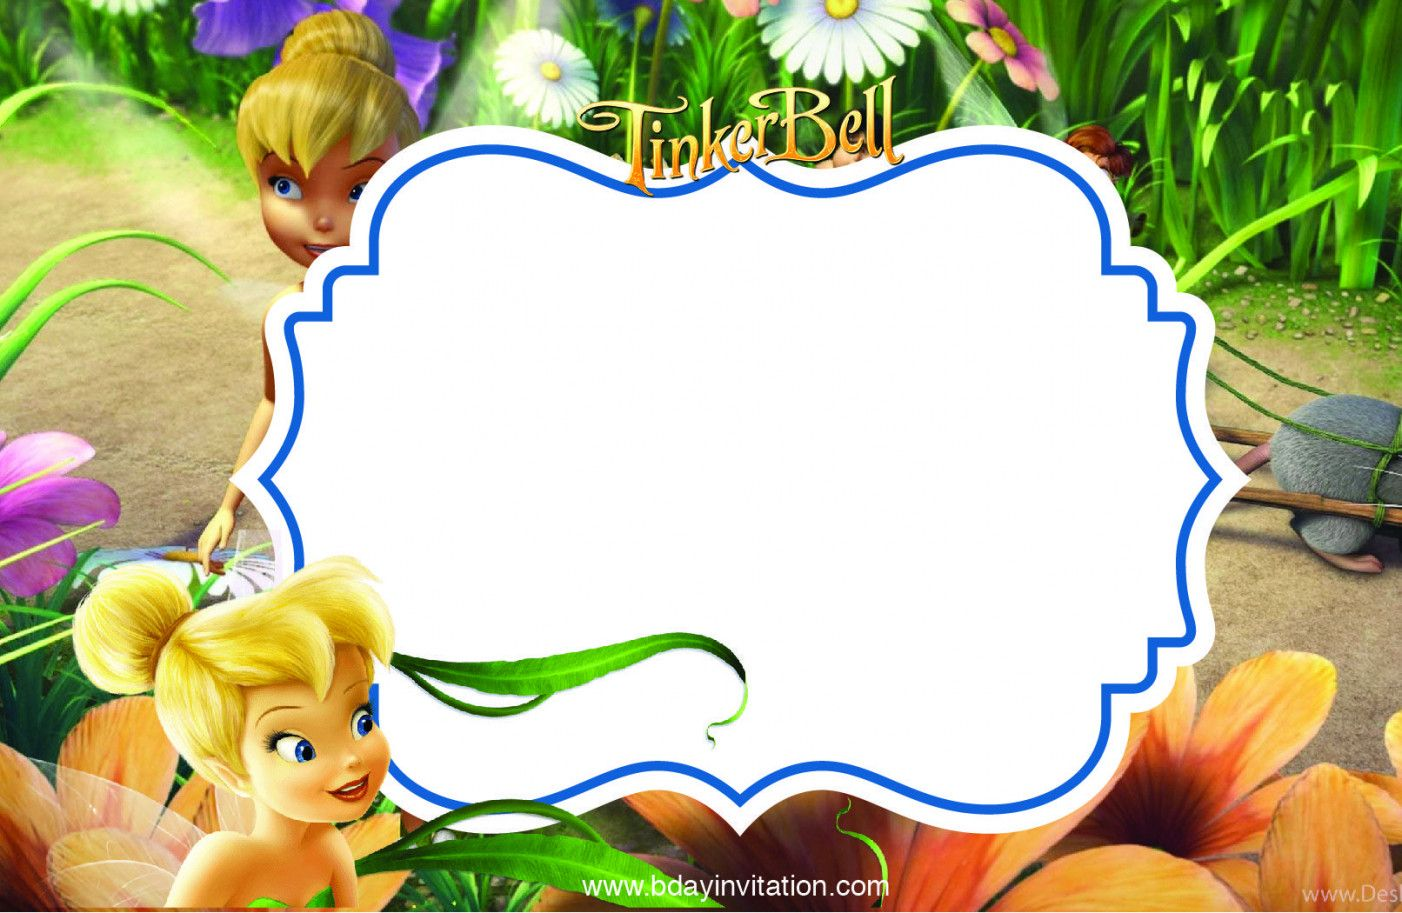 Tinkerbell Invitation Background Tinkerbell Invitations Birthday Invitation Background Invitation Template